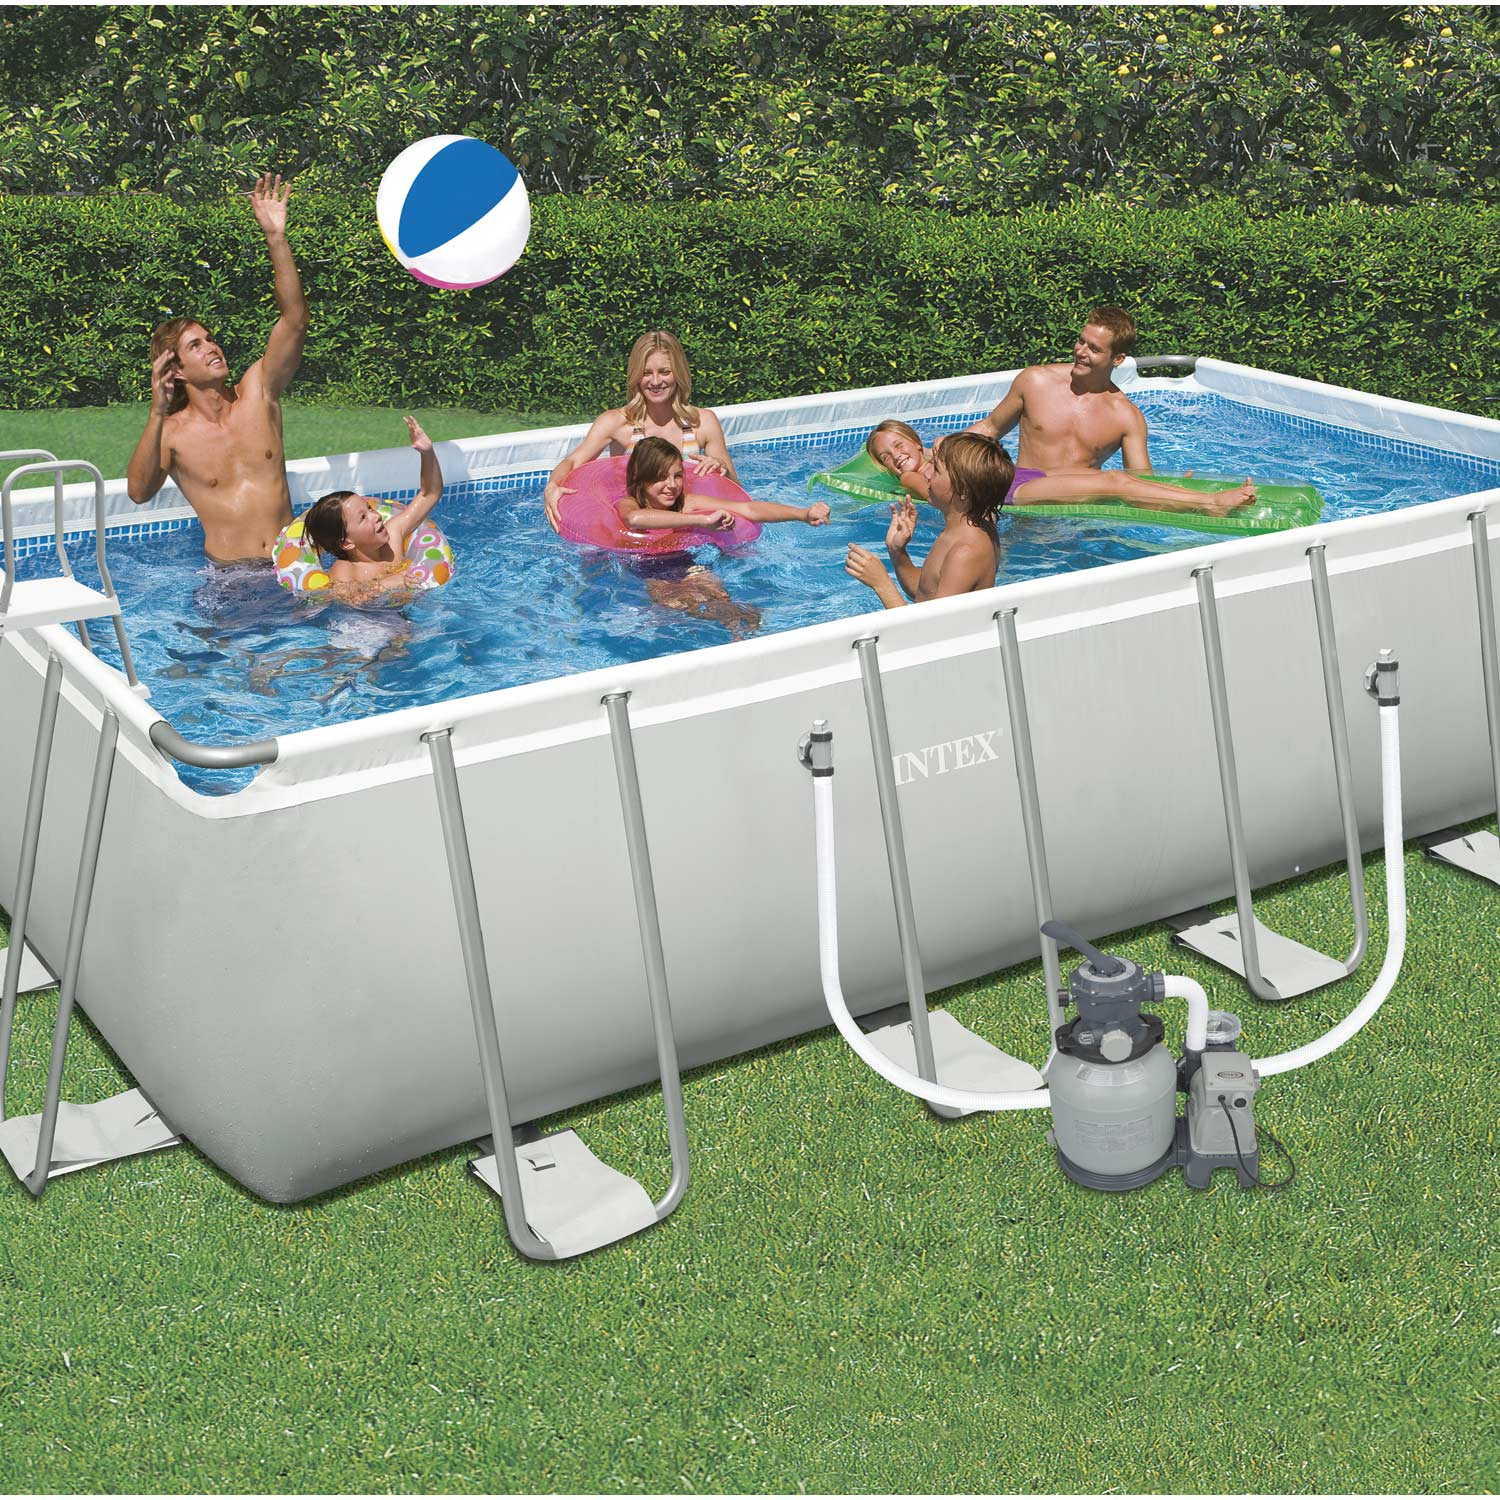 Piscine hors sol autoportante tubulaire ultra silver intex for Piscine hors sol fiscalite